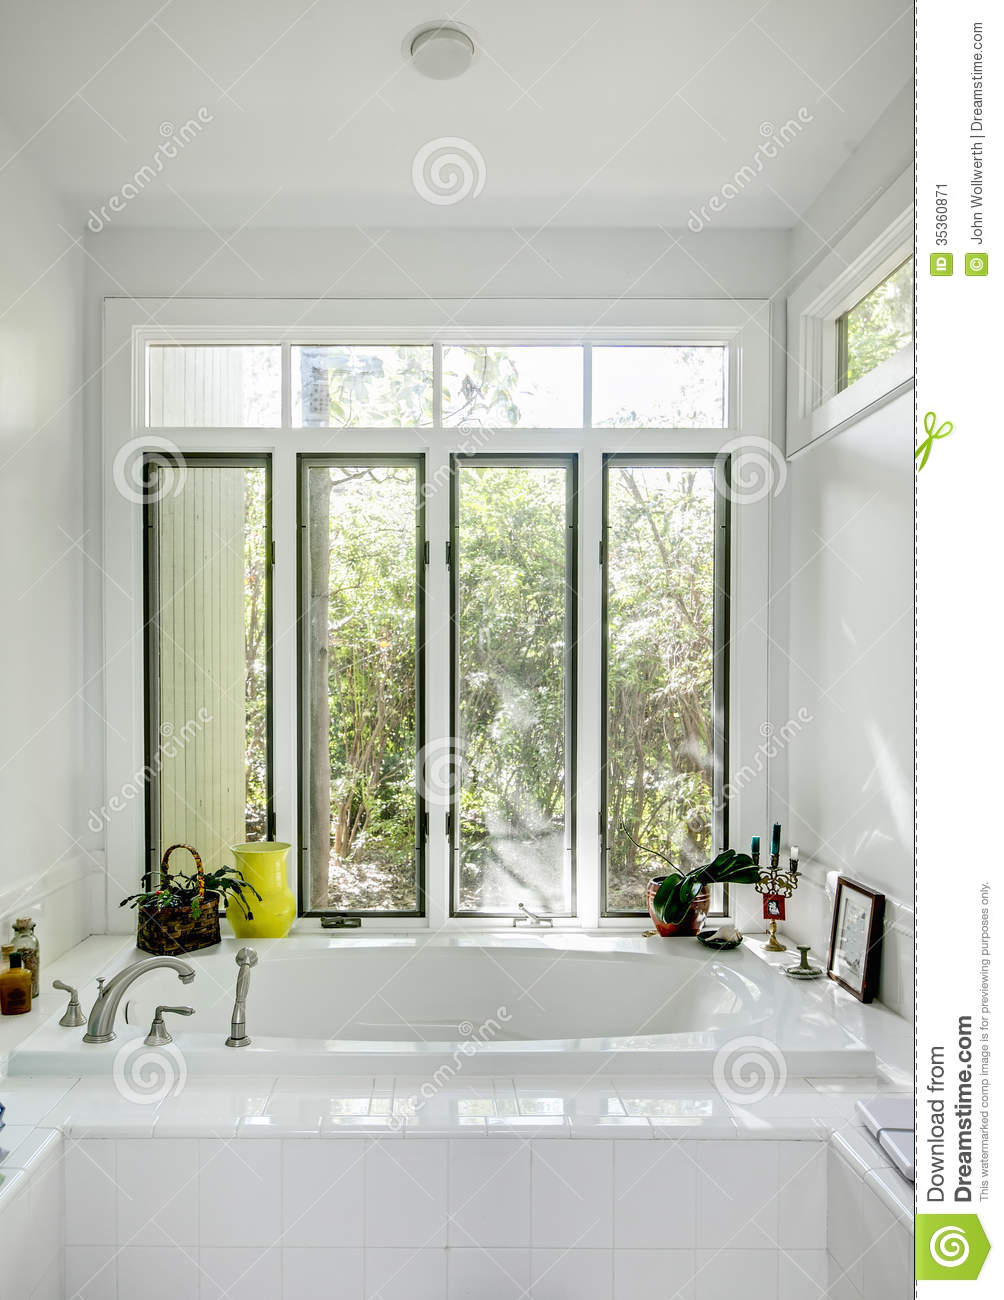 Luxury bathtub with windows stock image image 35360871 for Luxury home windows